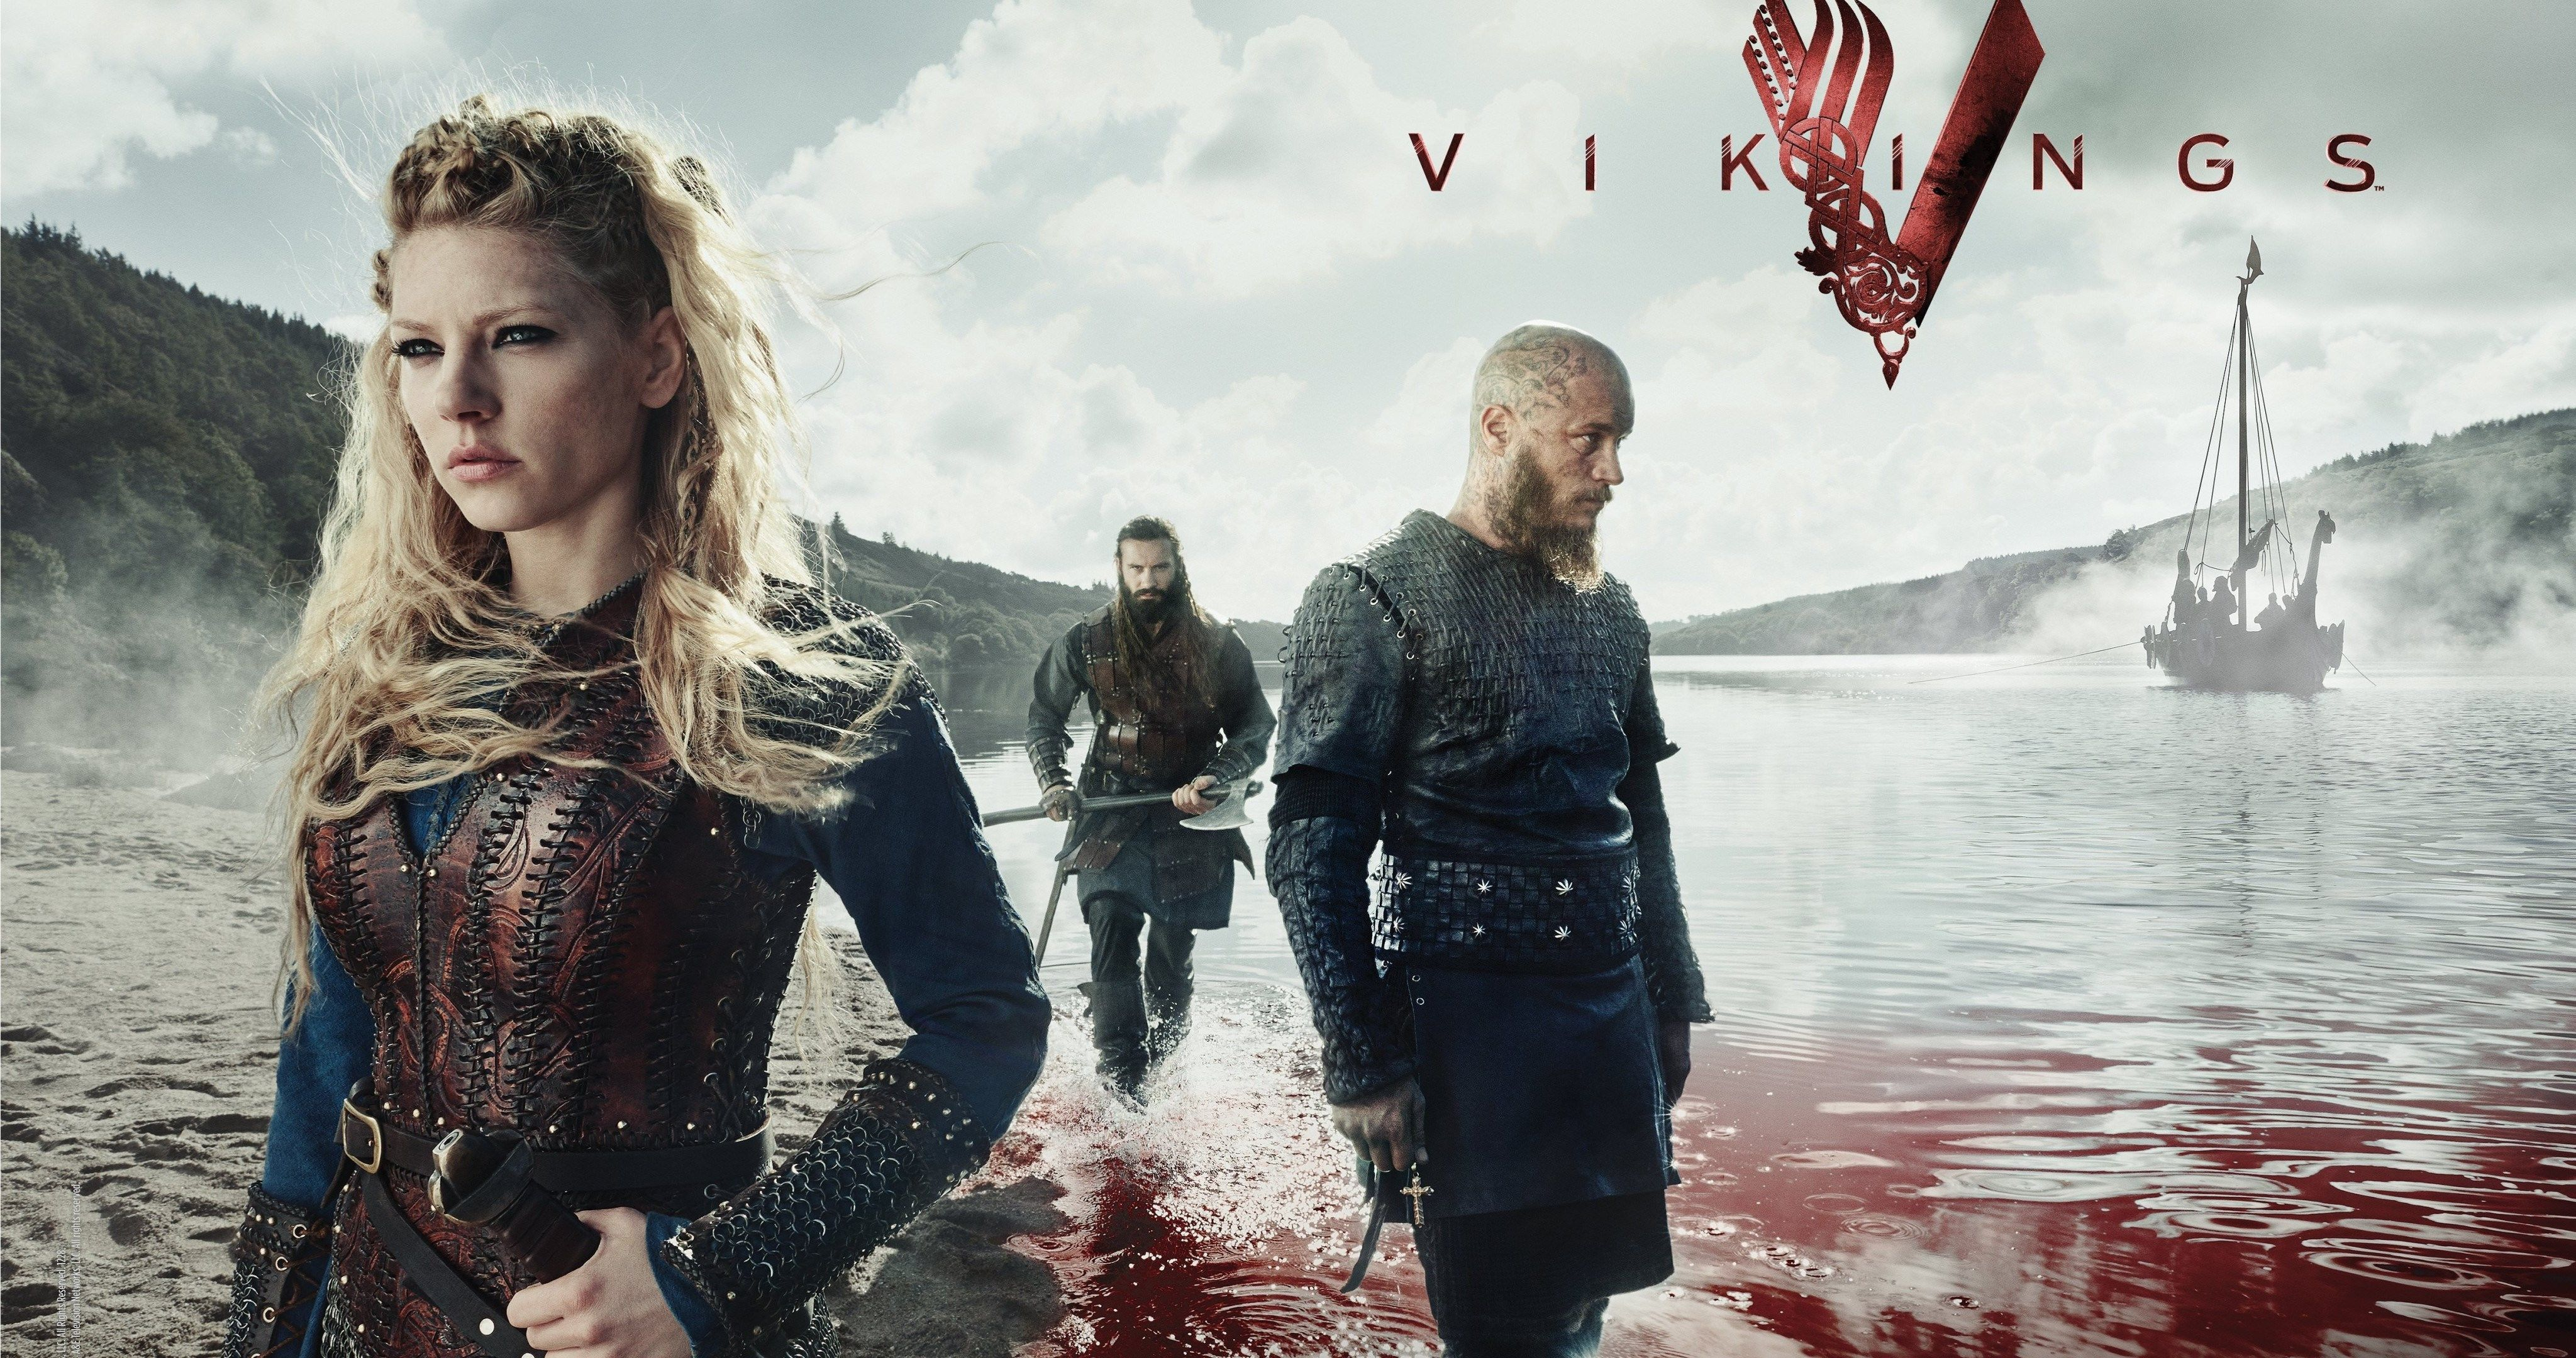 Vikings rangar lodbrok serial 4k ultra hd wallpaper - Norse mythology 4k wallpaper ...